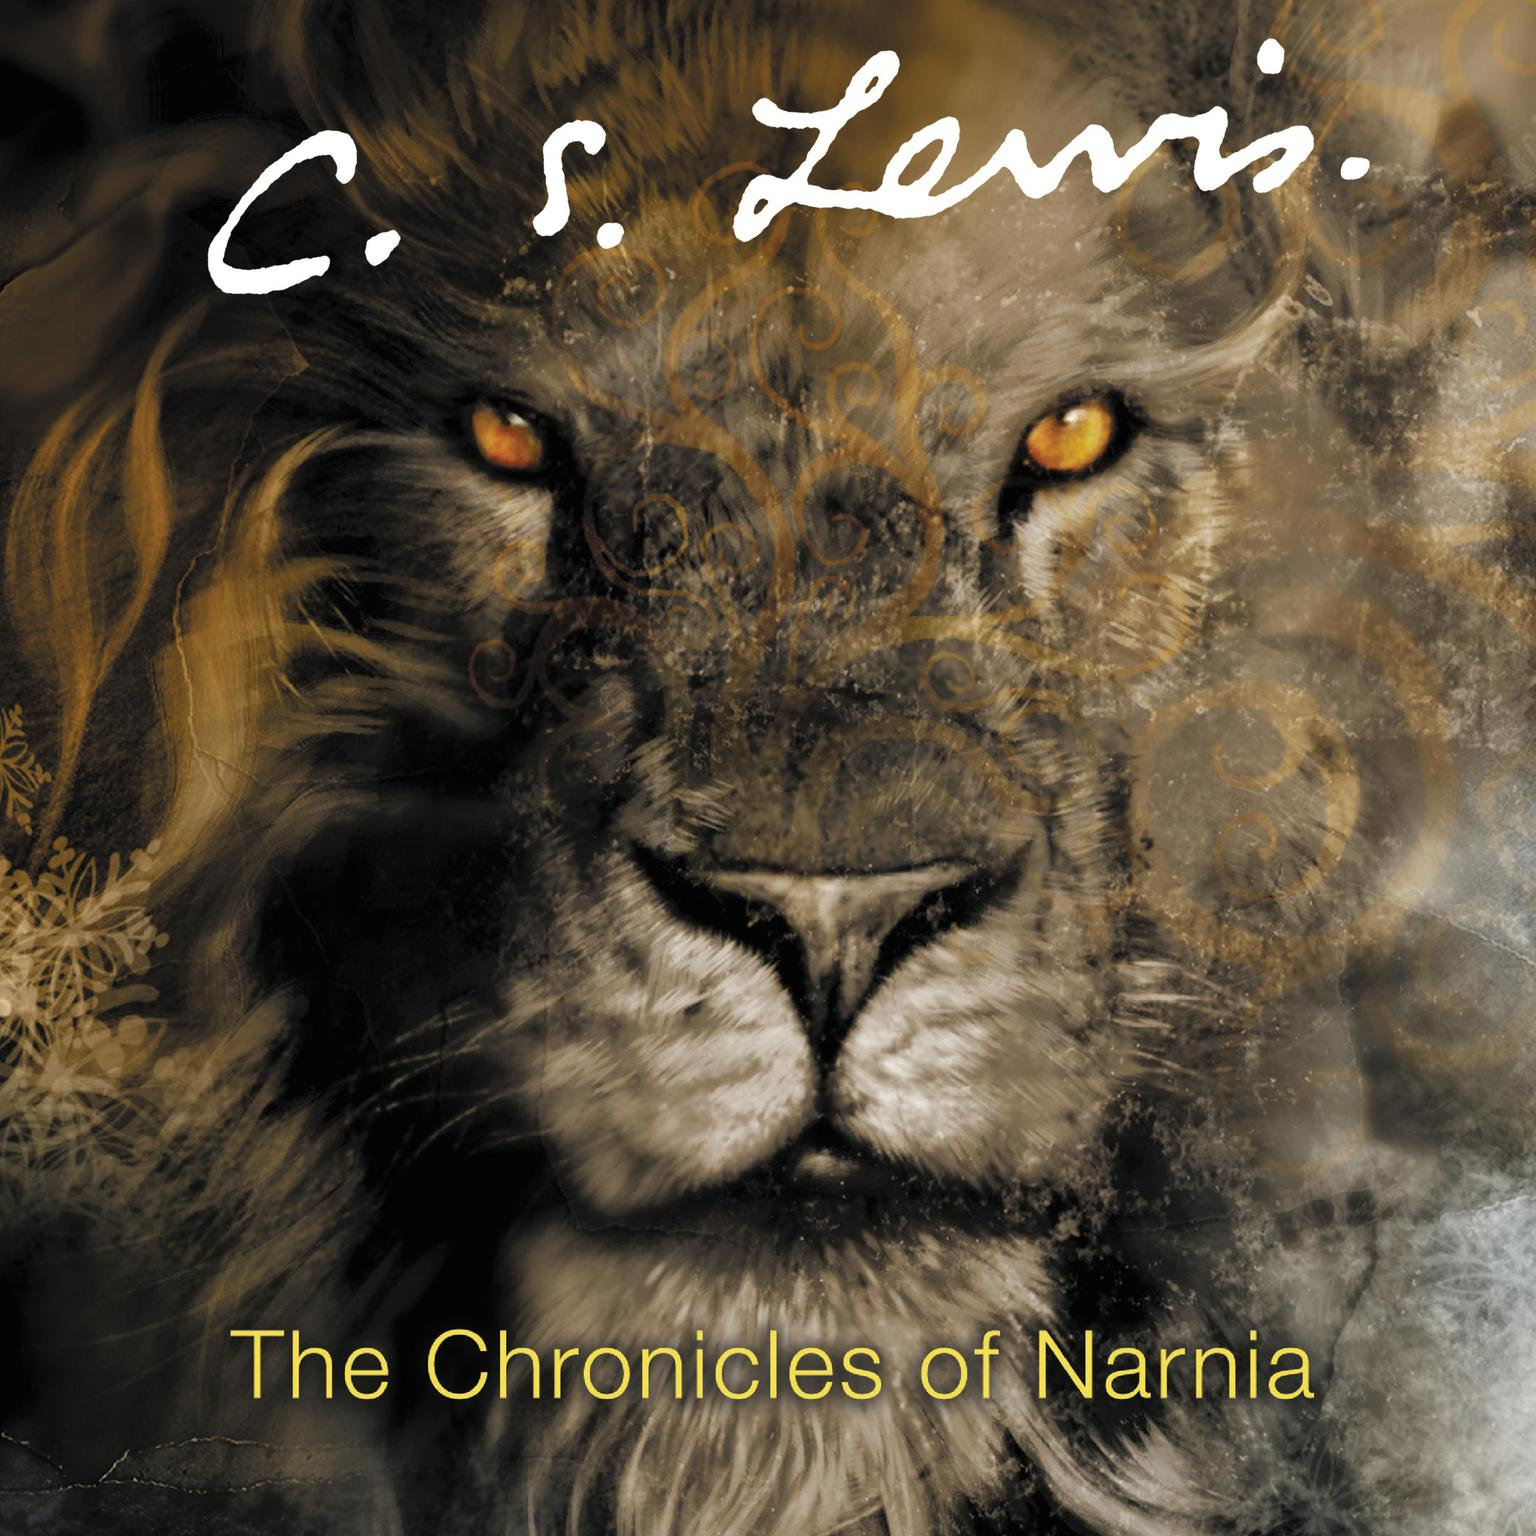 Printable The Chronicles of Narnia Adult Box Set Audiobook Cover Art